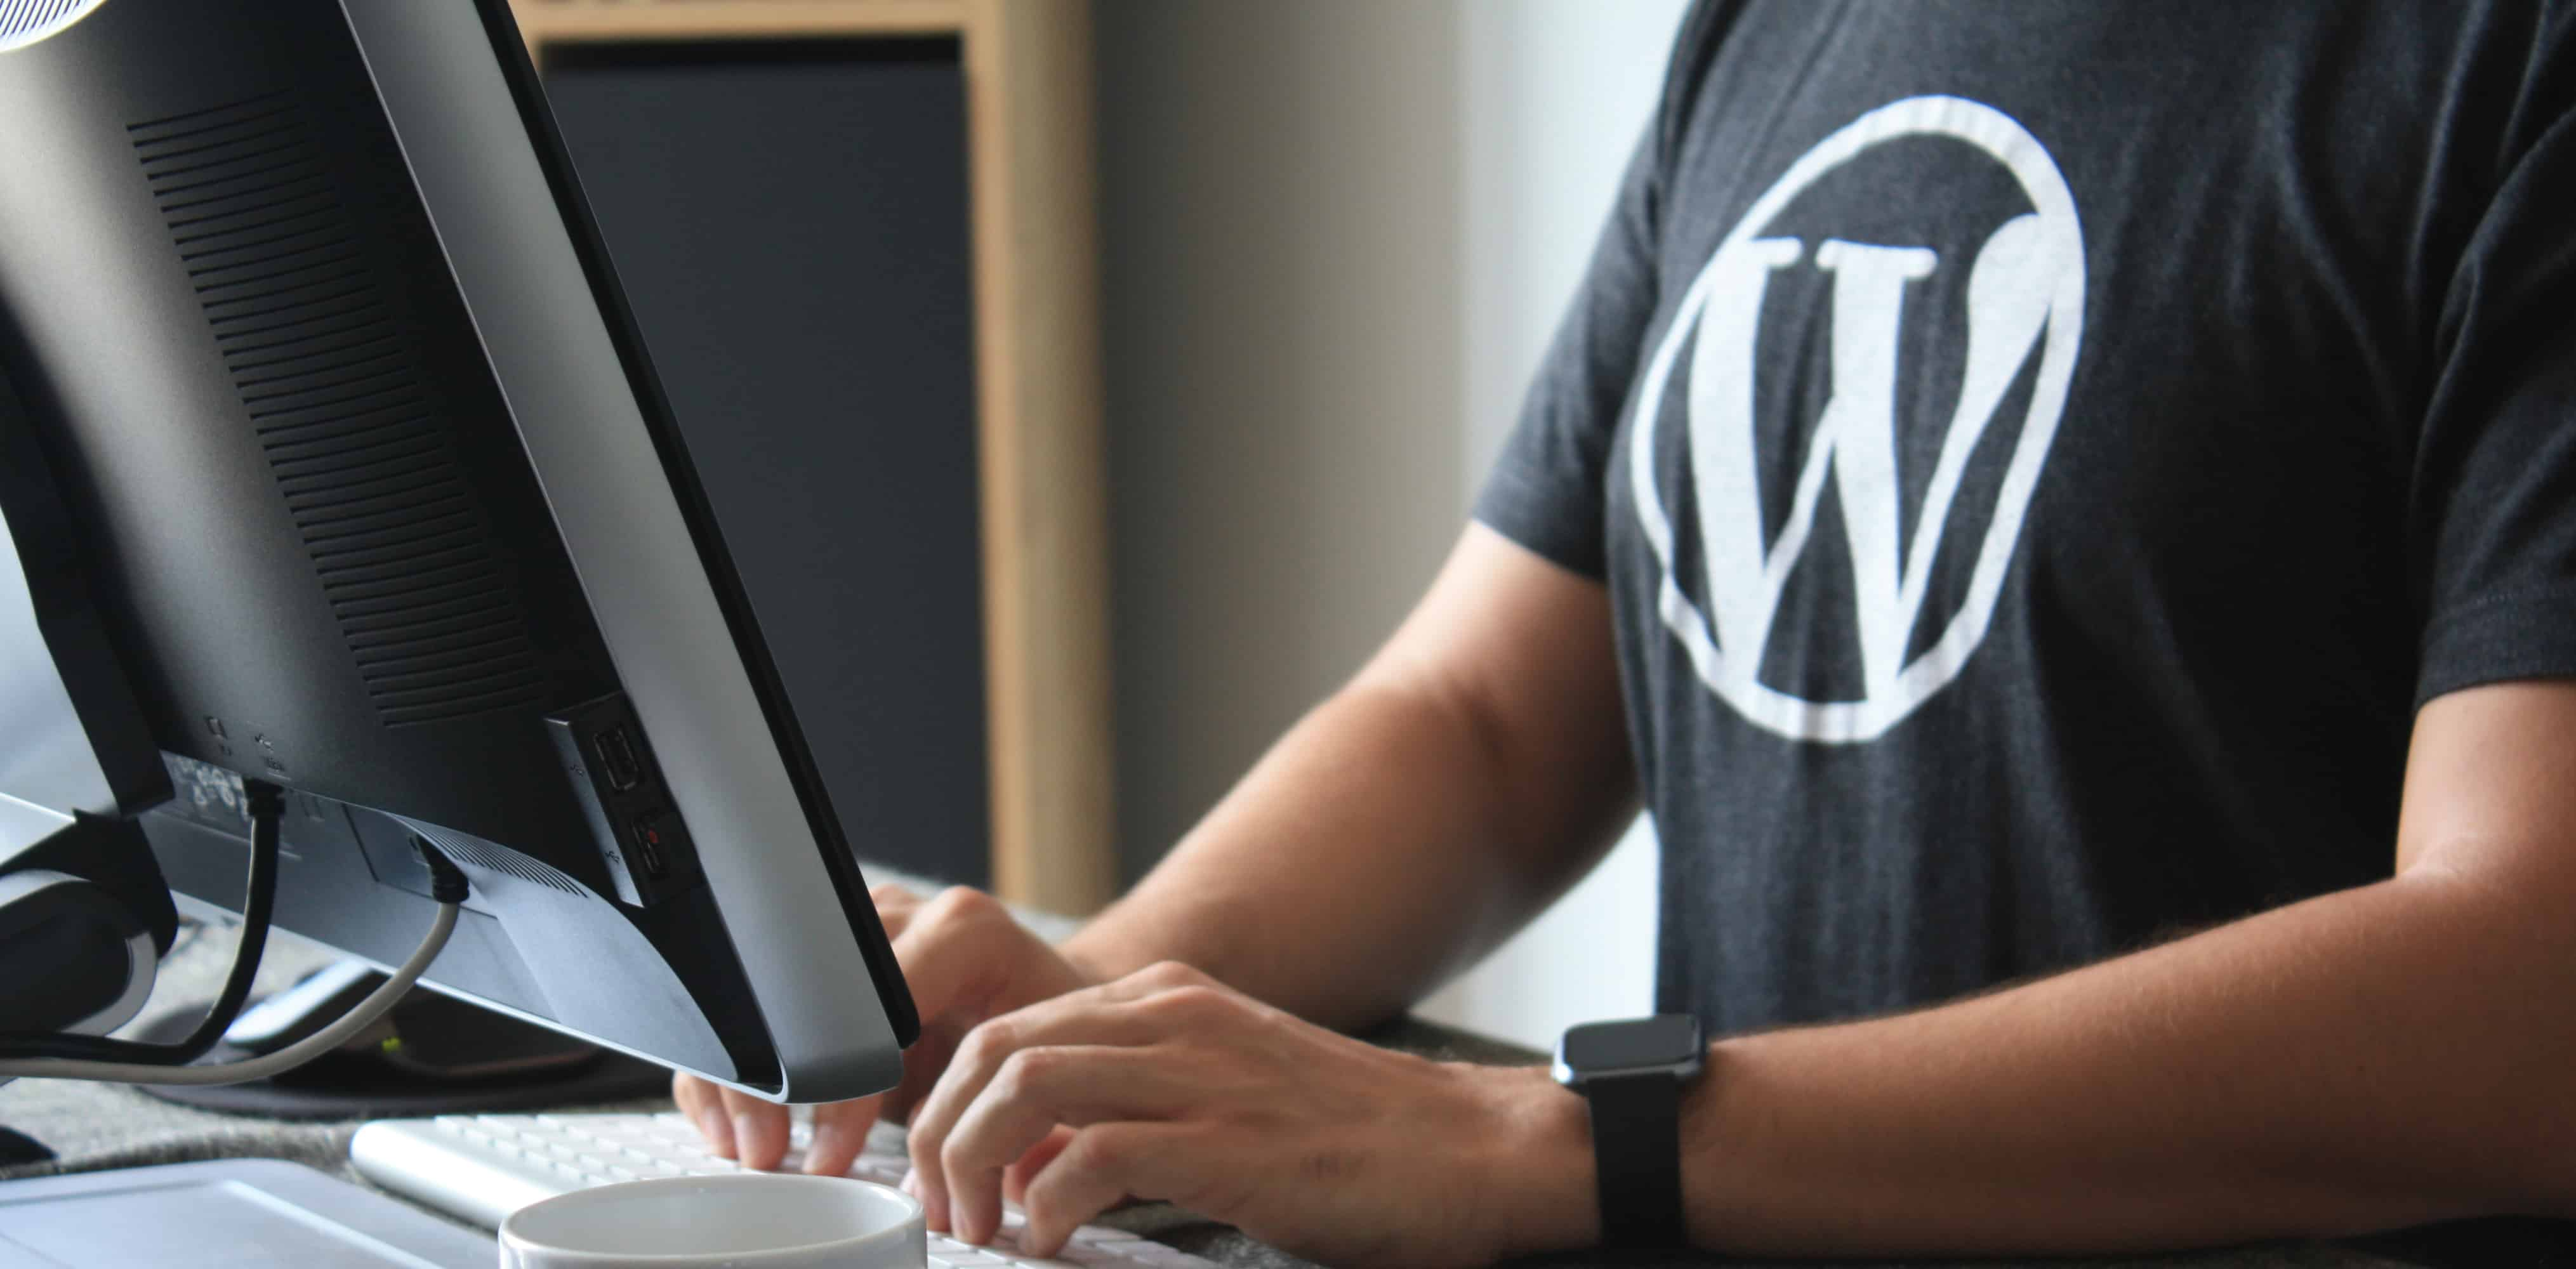 Why We Use & Recommend WordPress